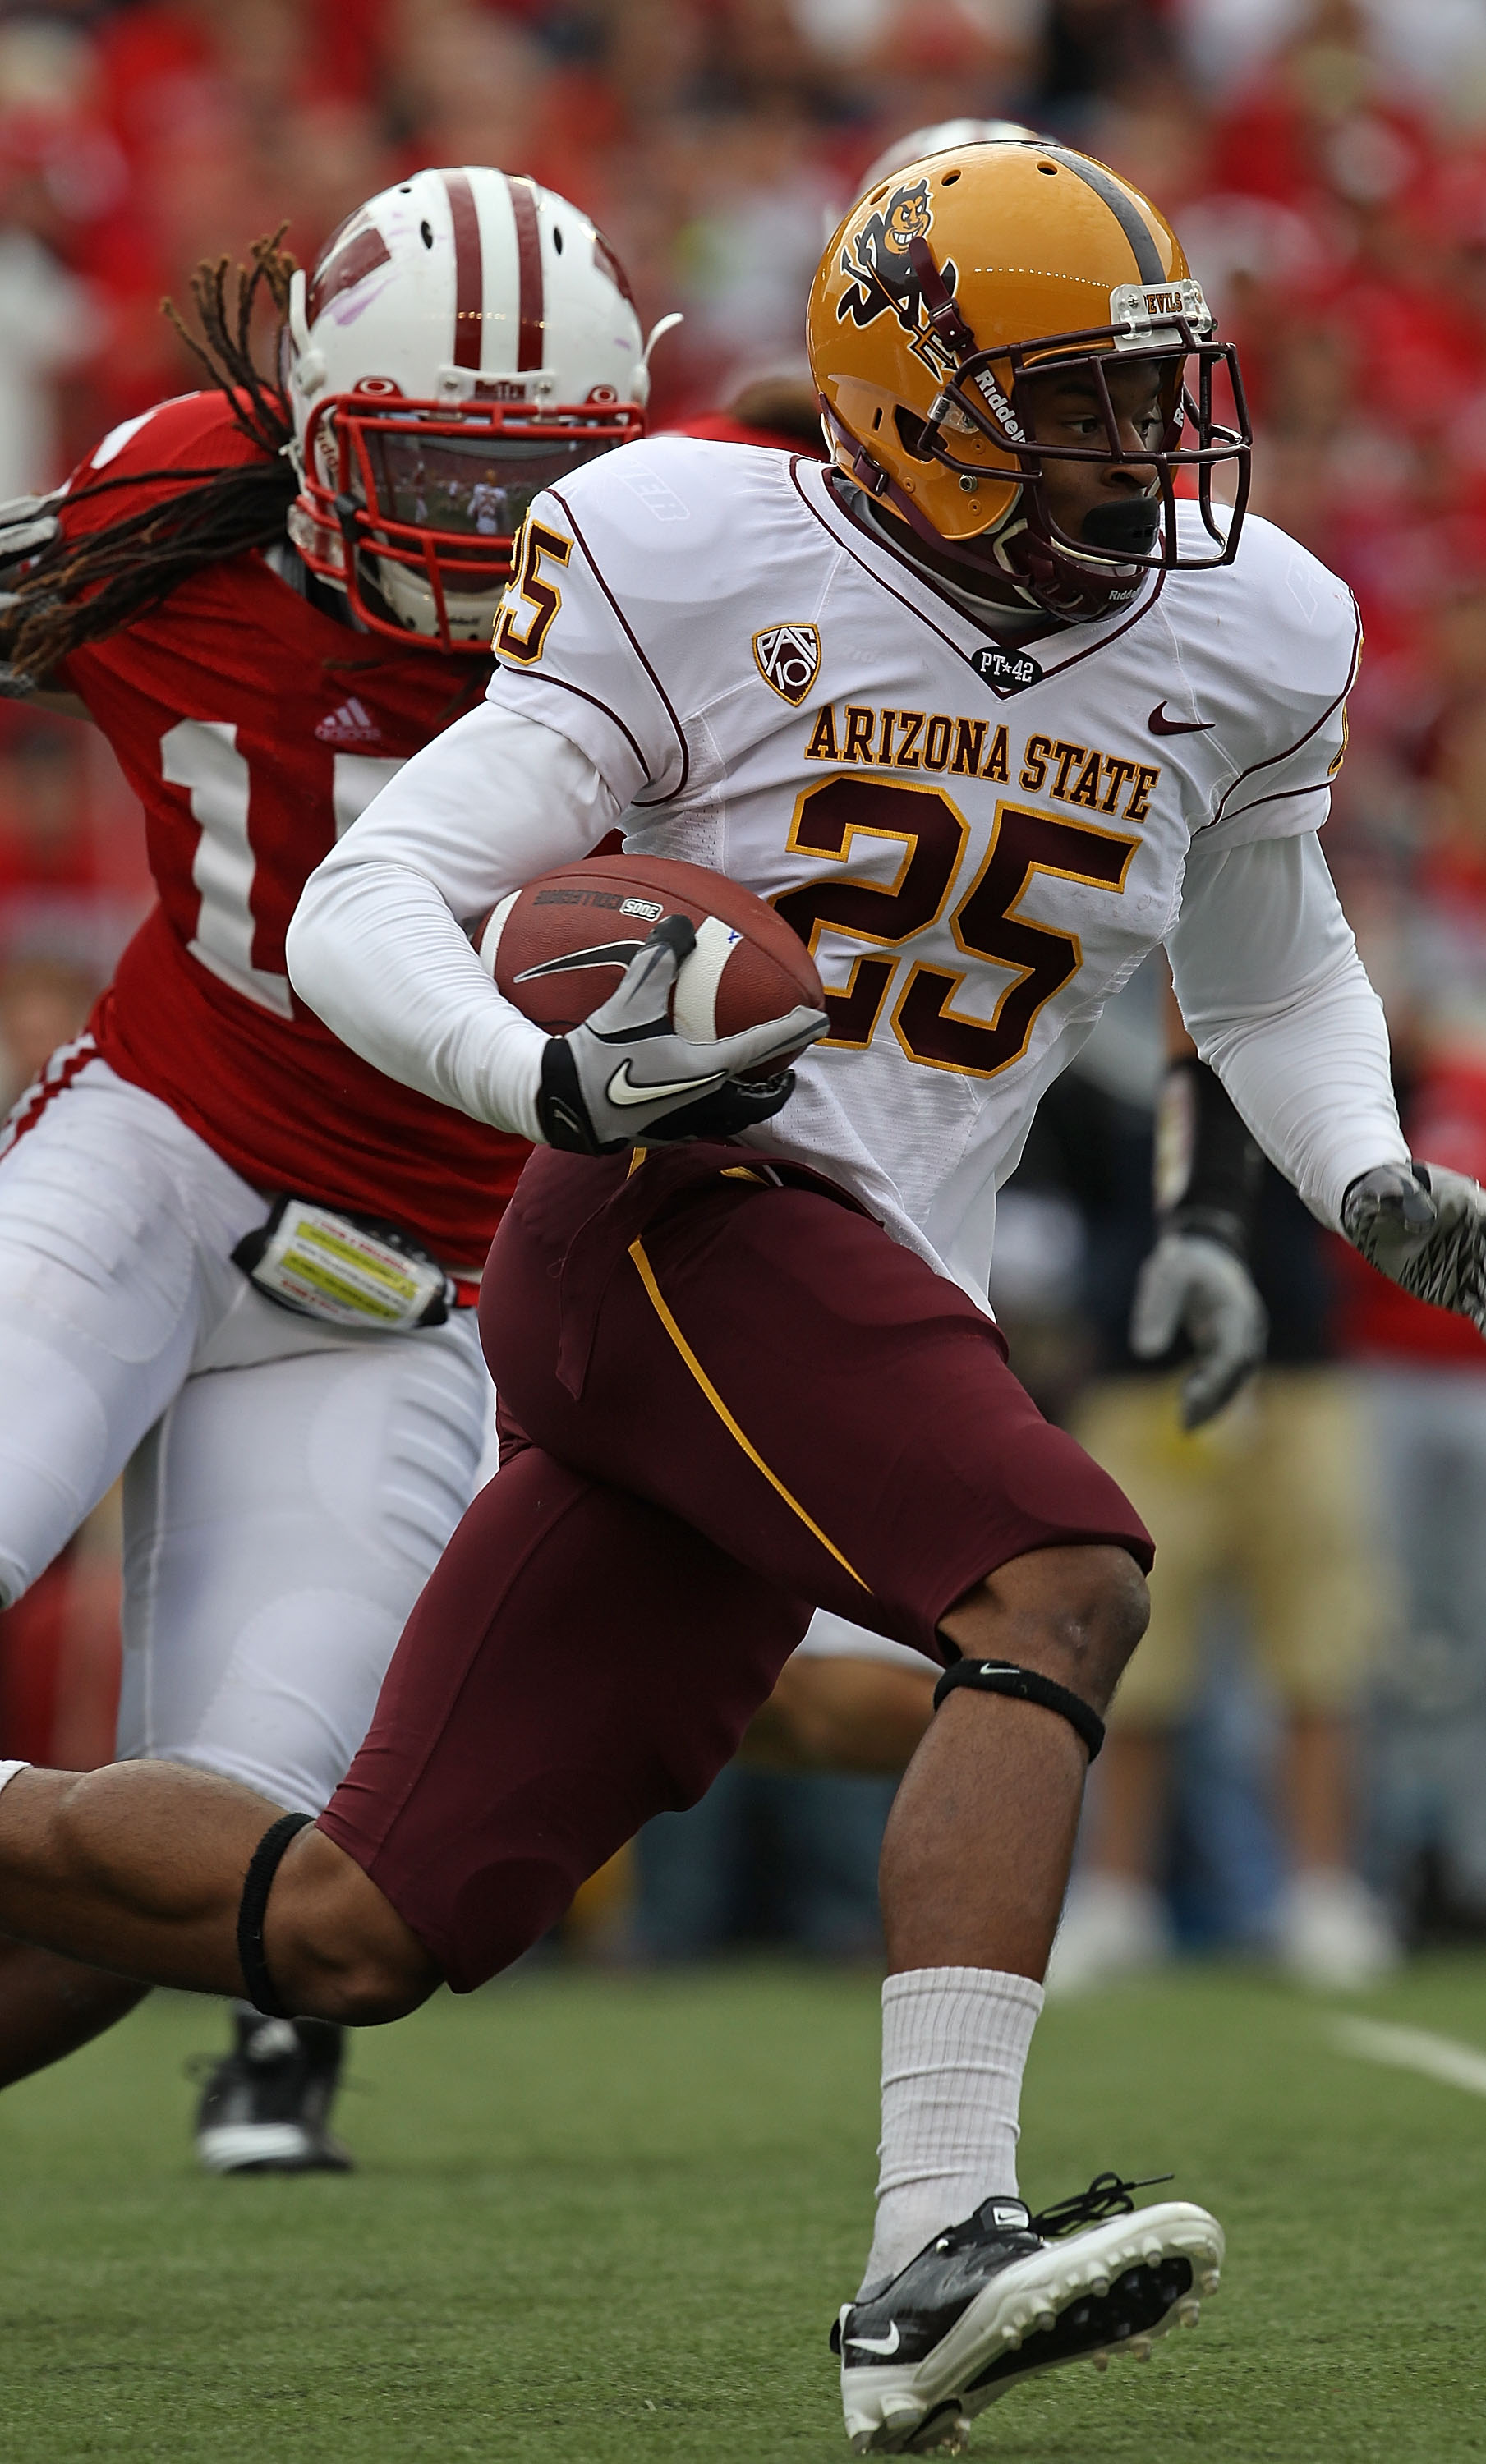 MADISON, WI - SEPTEMBER 18: Deantre Lewis #25  of the Arizona State Sun Devils runs against the Wisconsin Badgers at Camp Randall Stadium on September 18, 2010 in Madison, Wisconsin. Wisconsin defeated Arizona State 20-19. (Photo by Jonathan Daniel/Getty